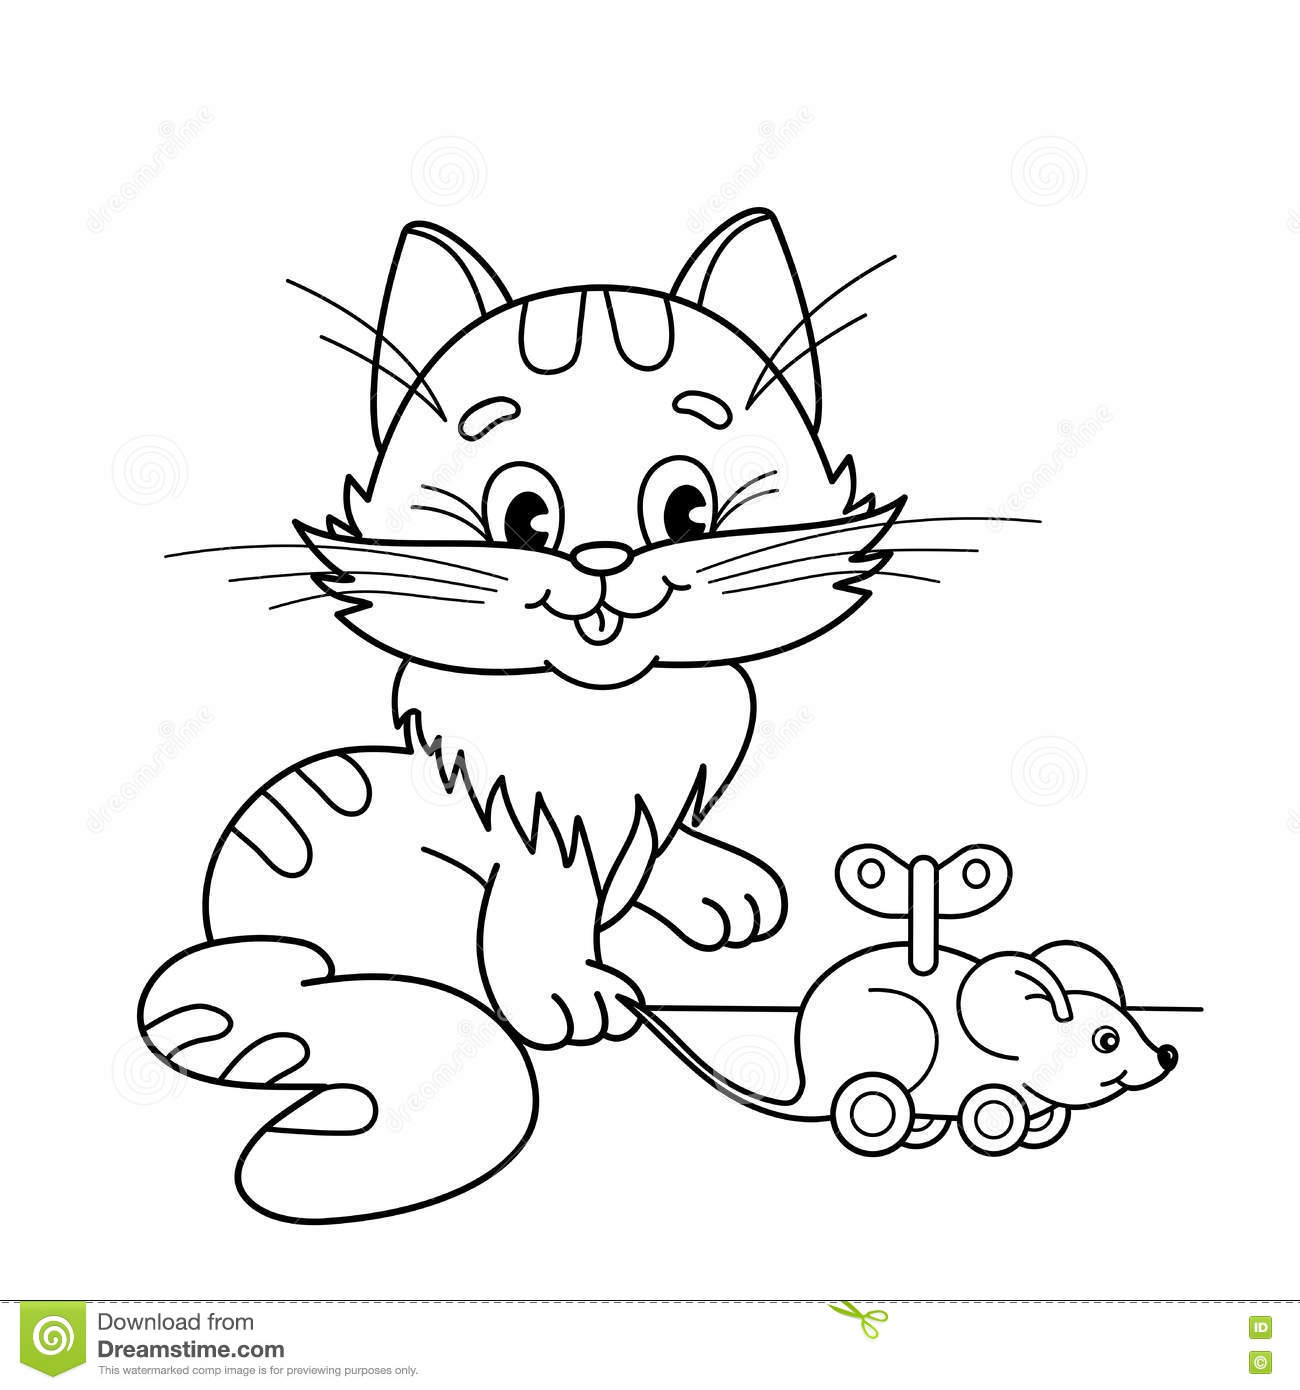 coloring page outline cartoon cat toy clockwork mouse coloring book kids